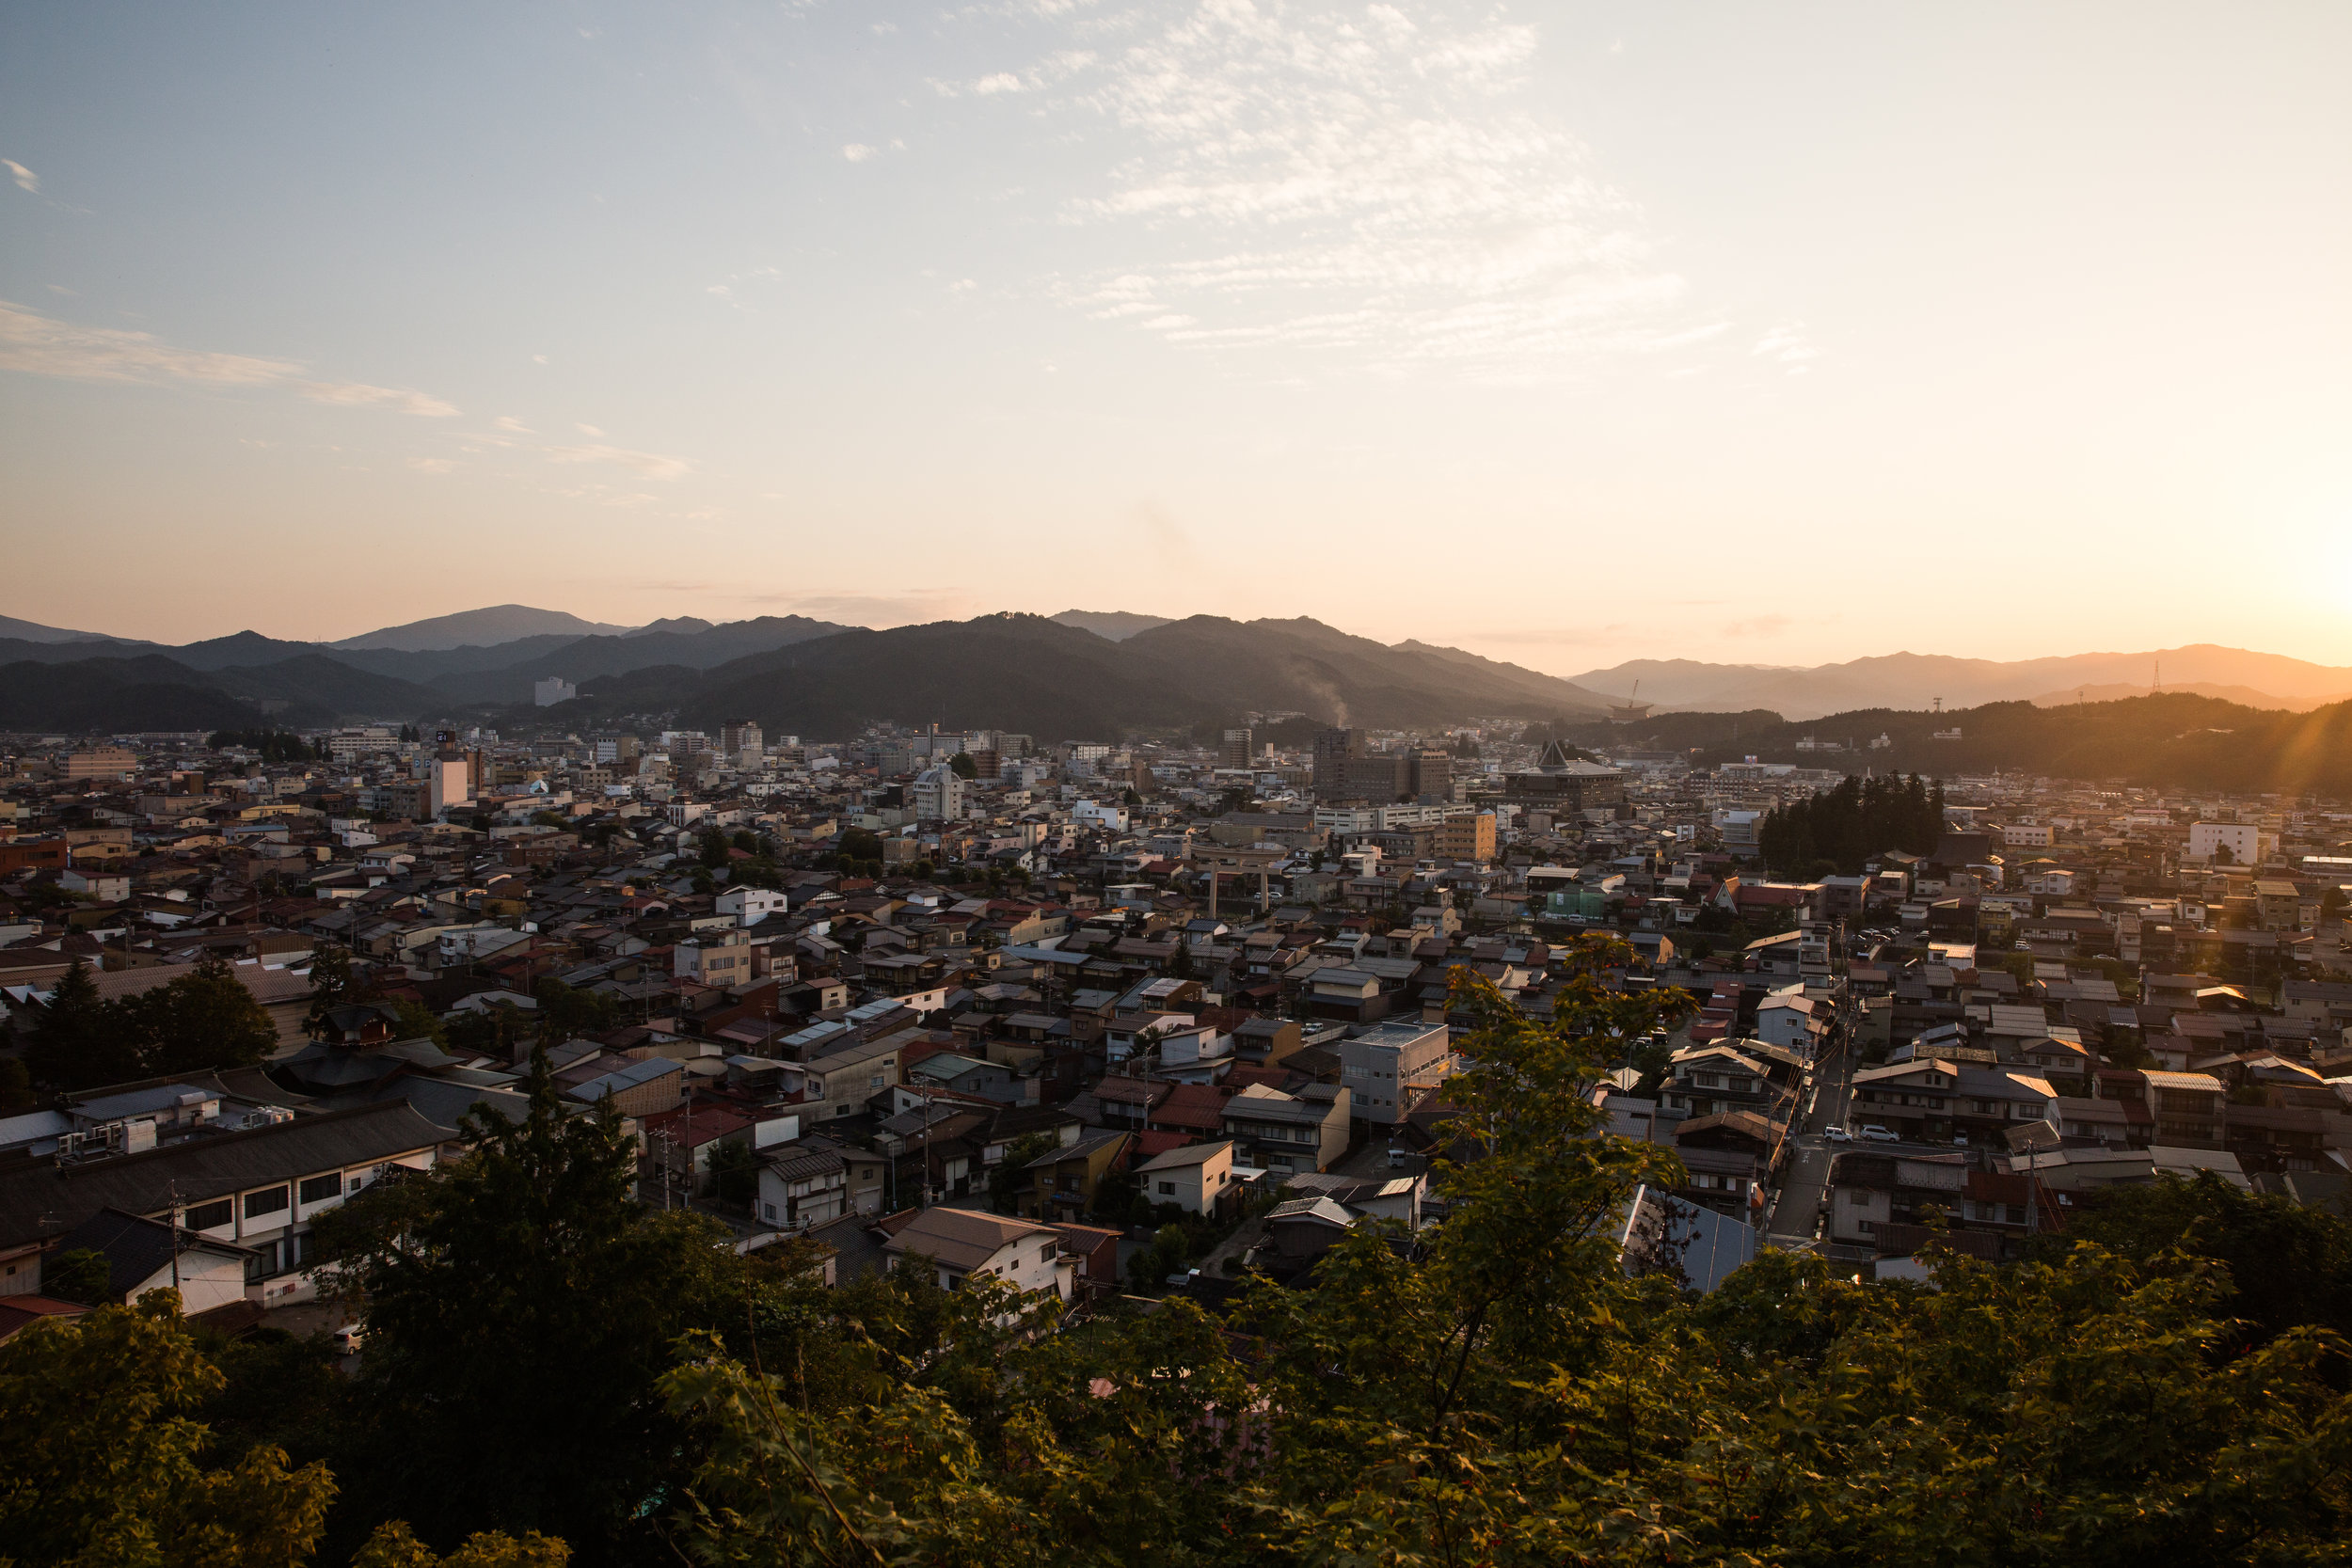 We made reservations at Hagi; the perfect perfect onsen experience coupled with a view of the city that still makes me smile.